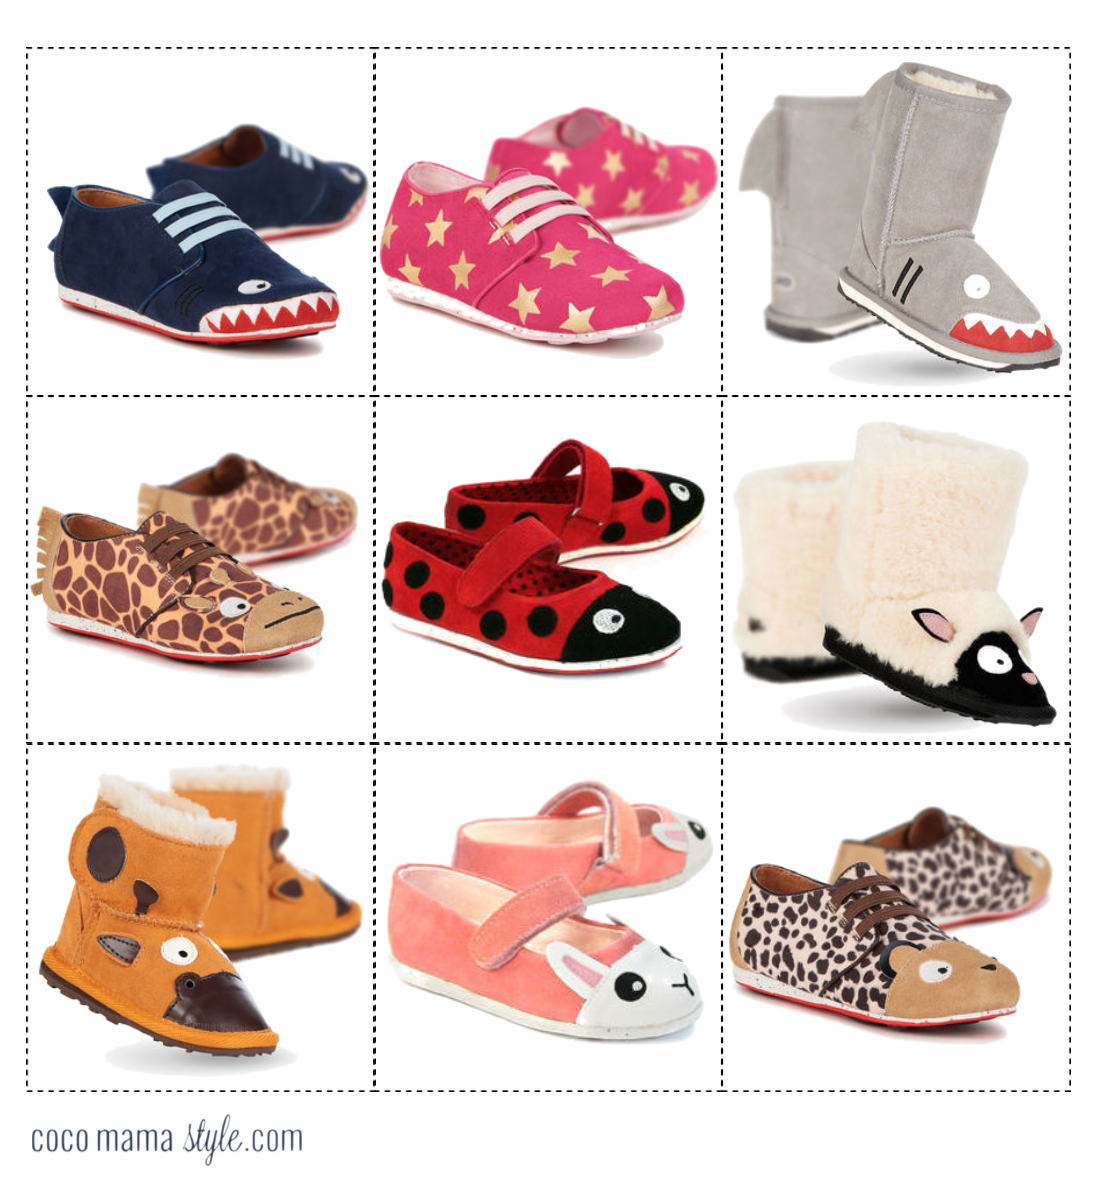 cocomamastyle | Little Creatures | shoes | EMU Australia